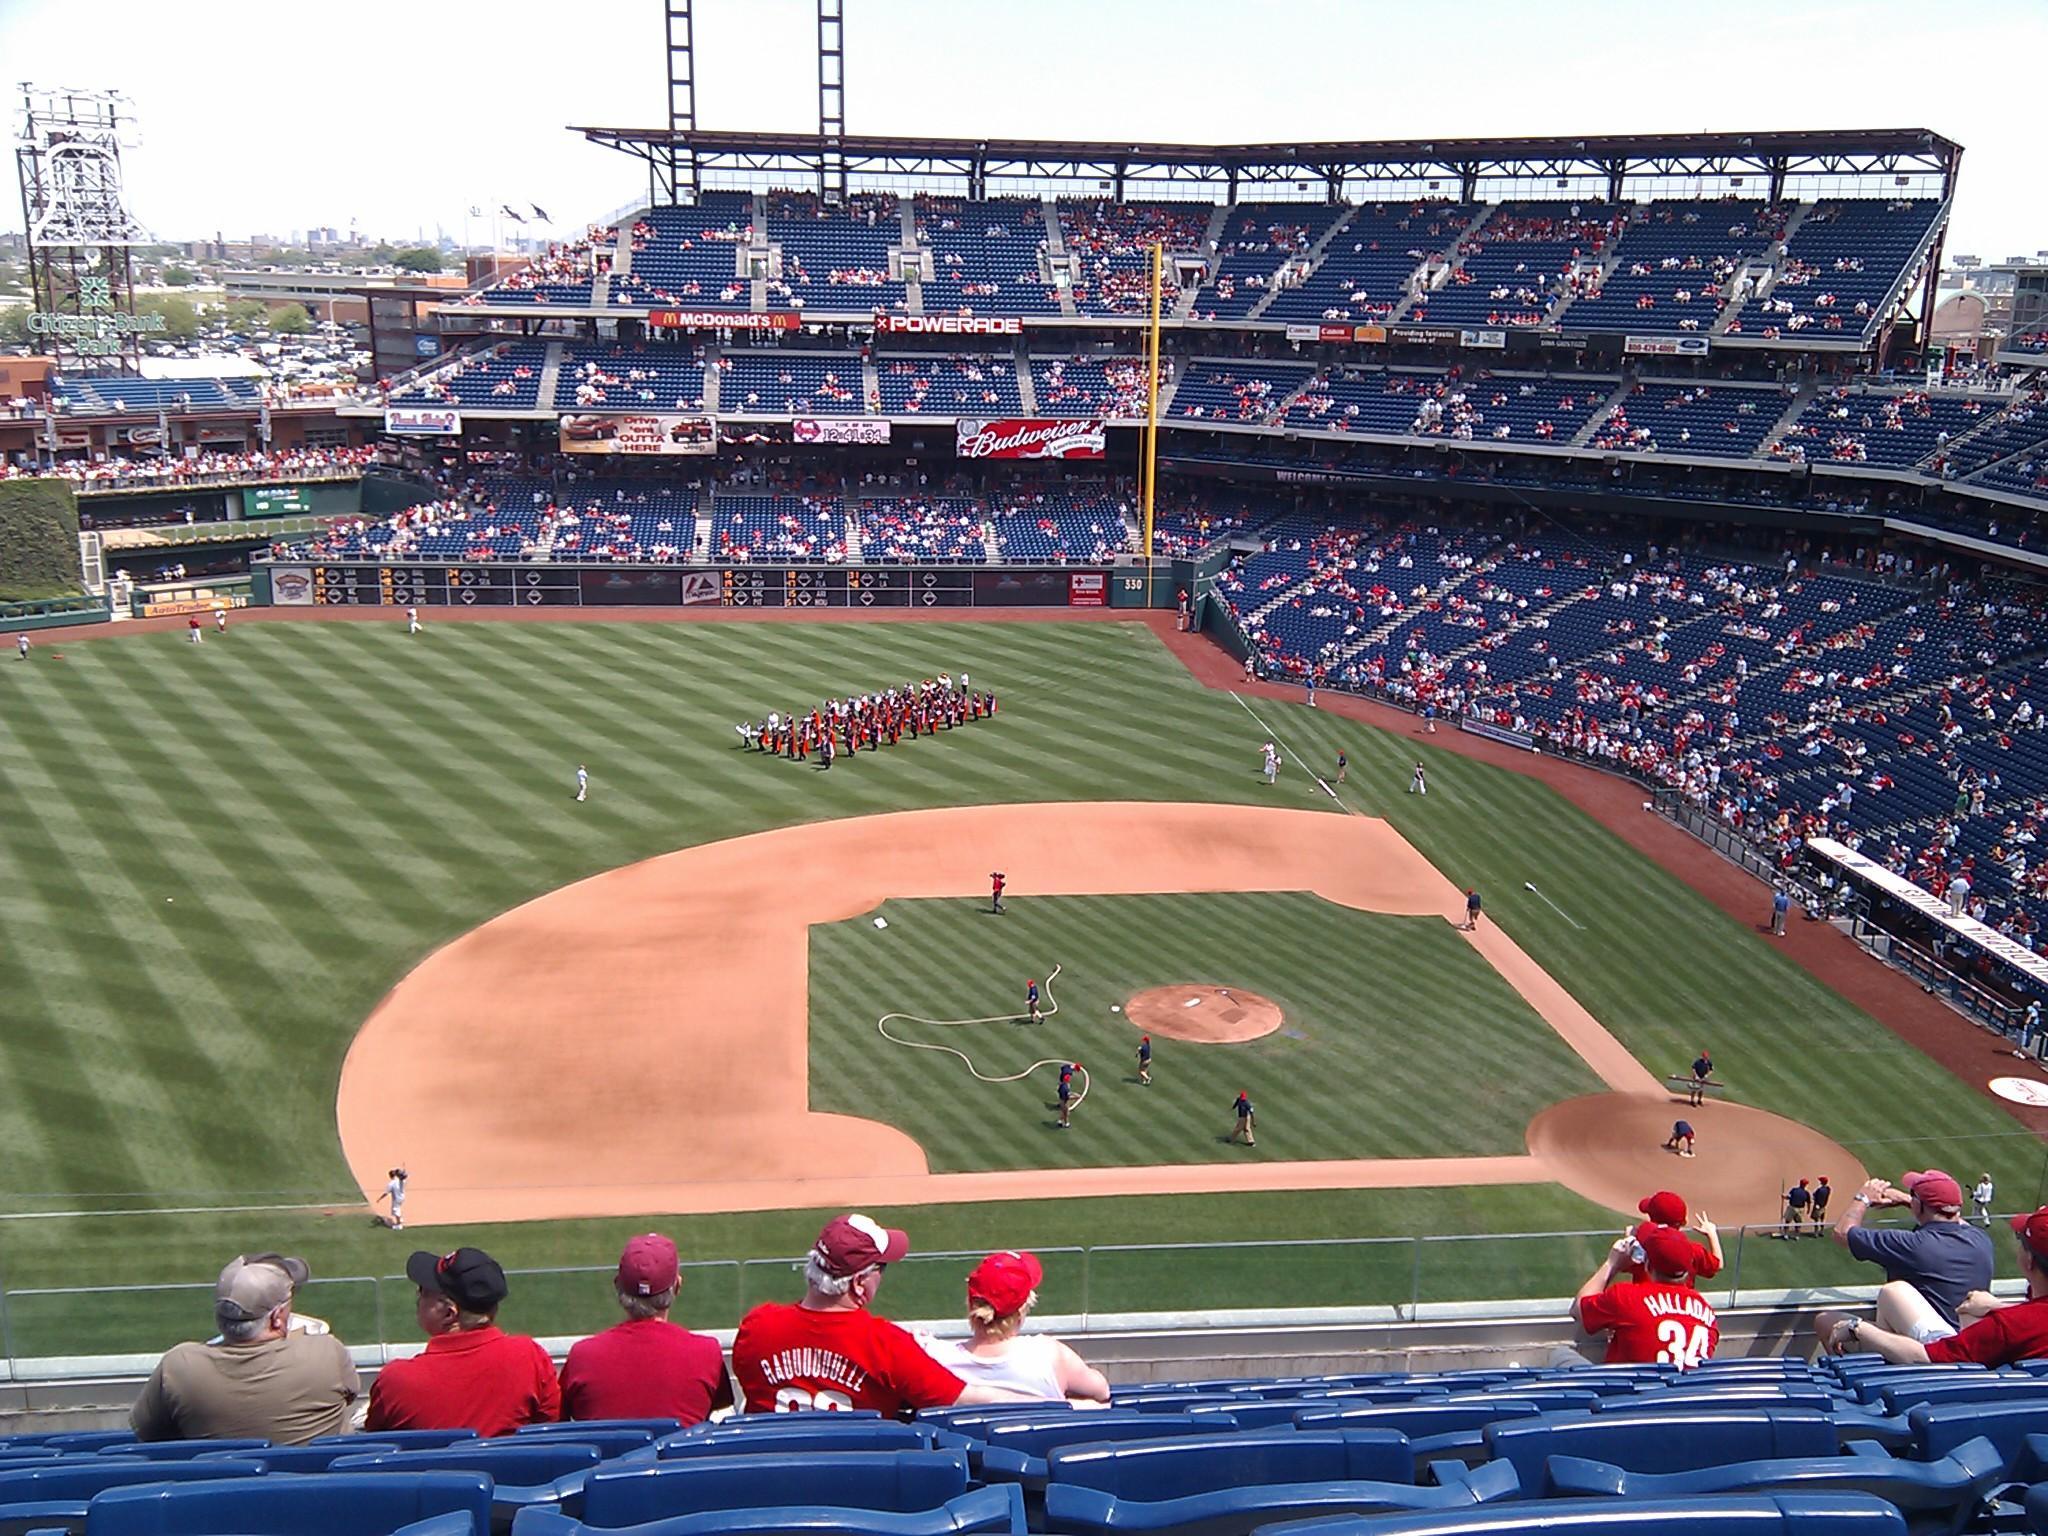 Citizens Bank Park Section 326 Row 9 Seat 20